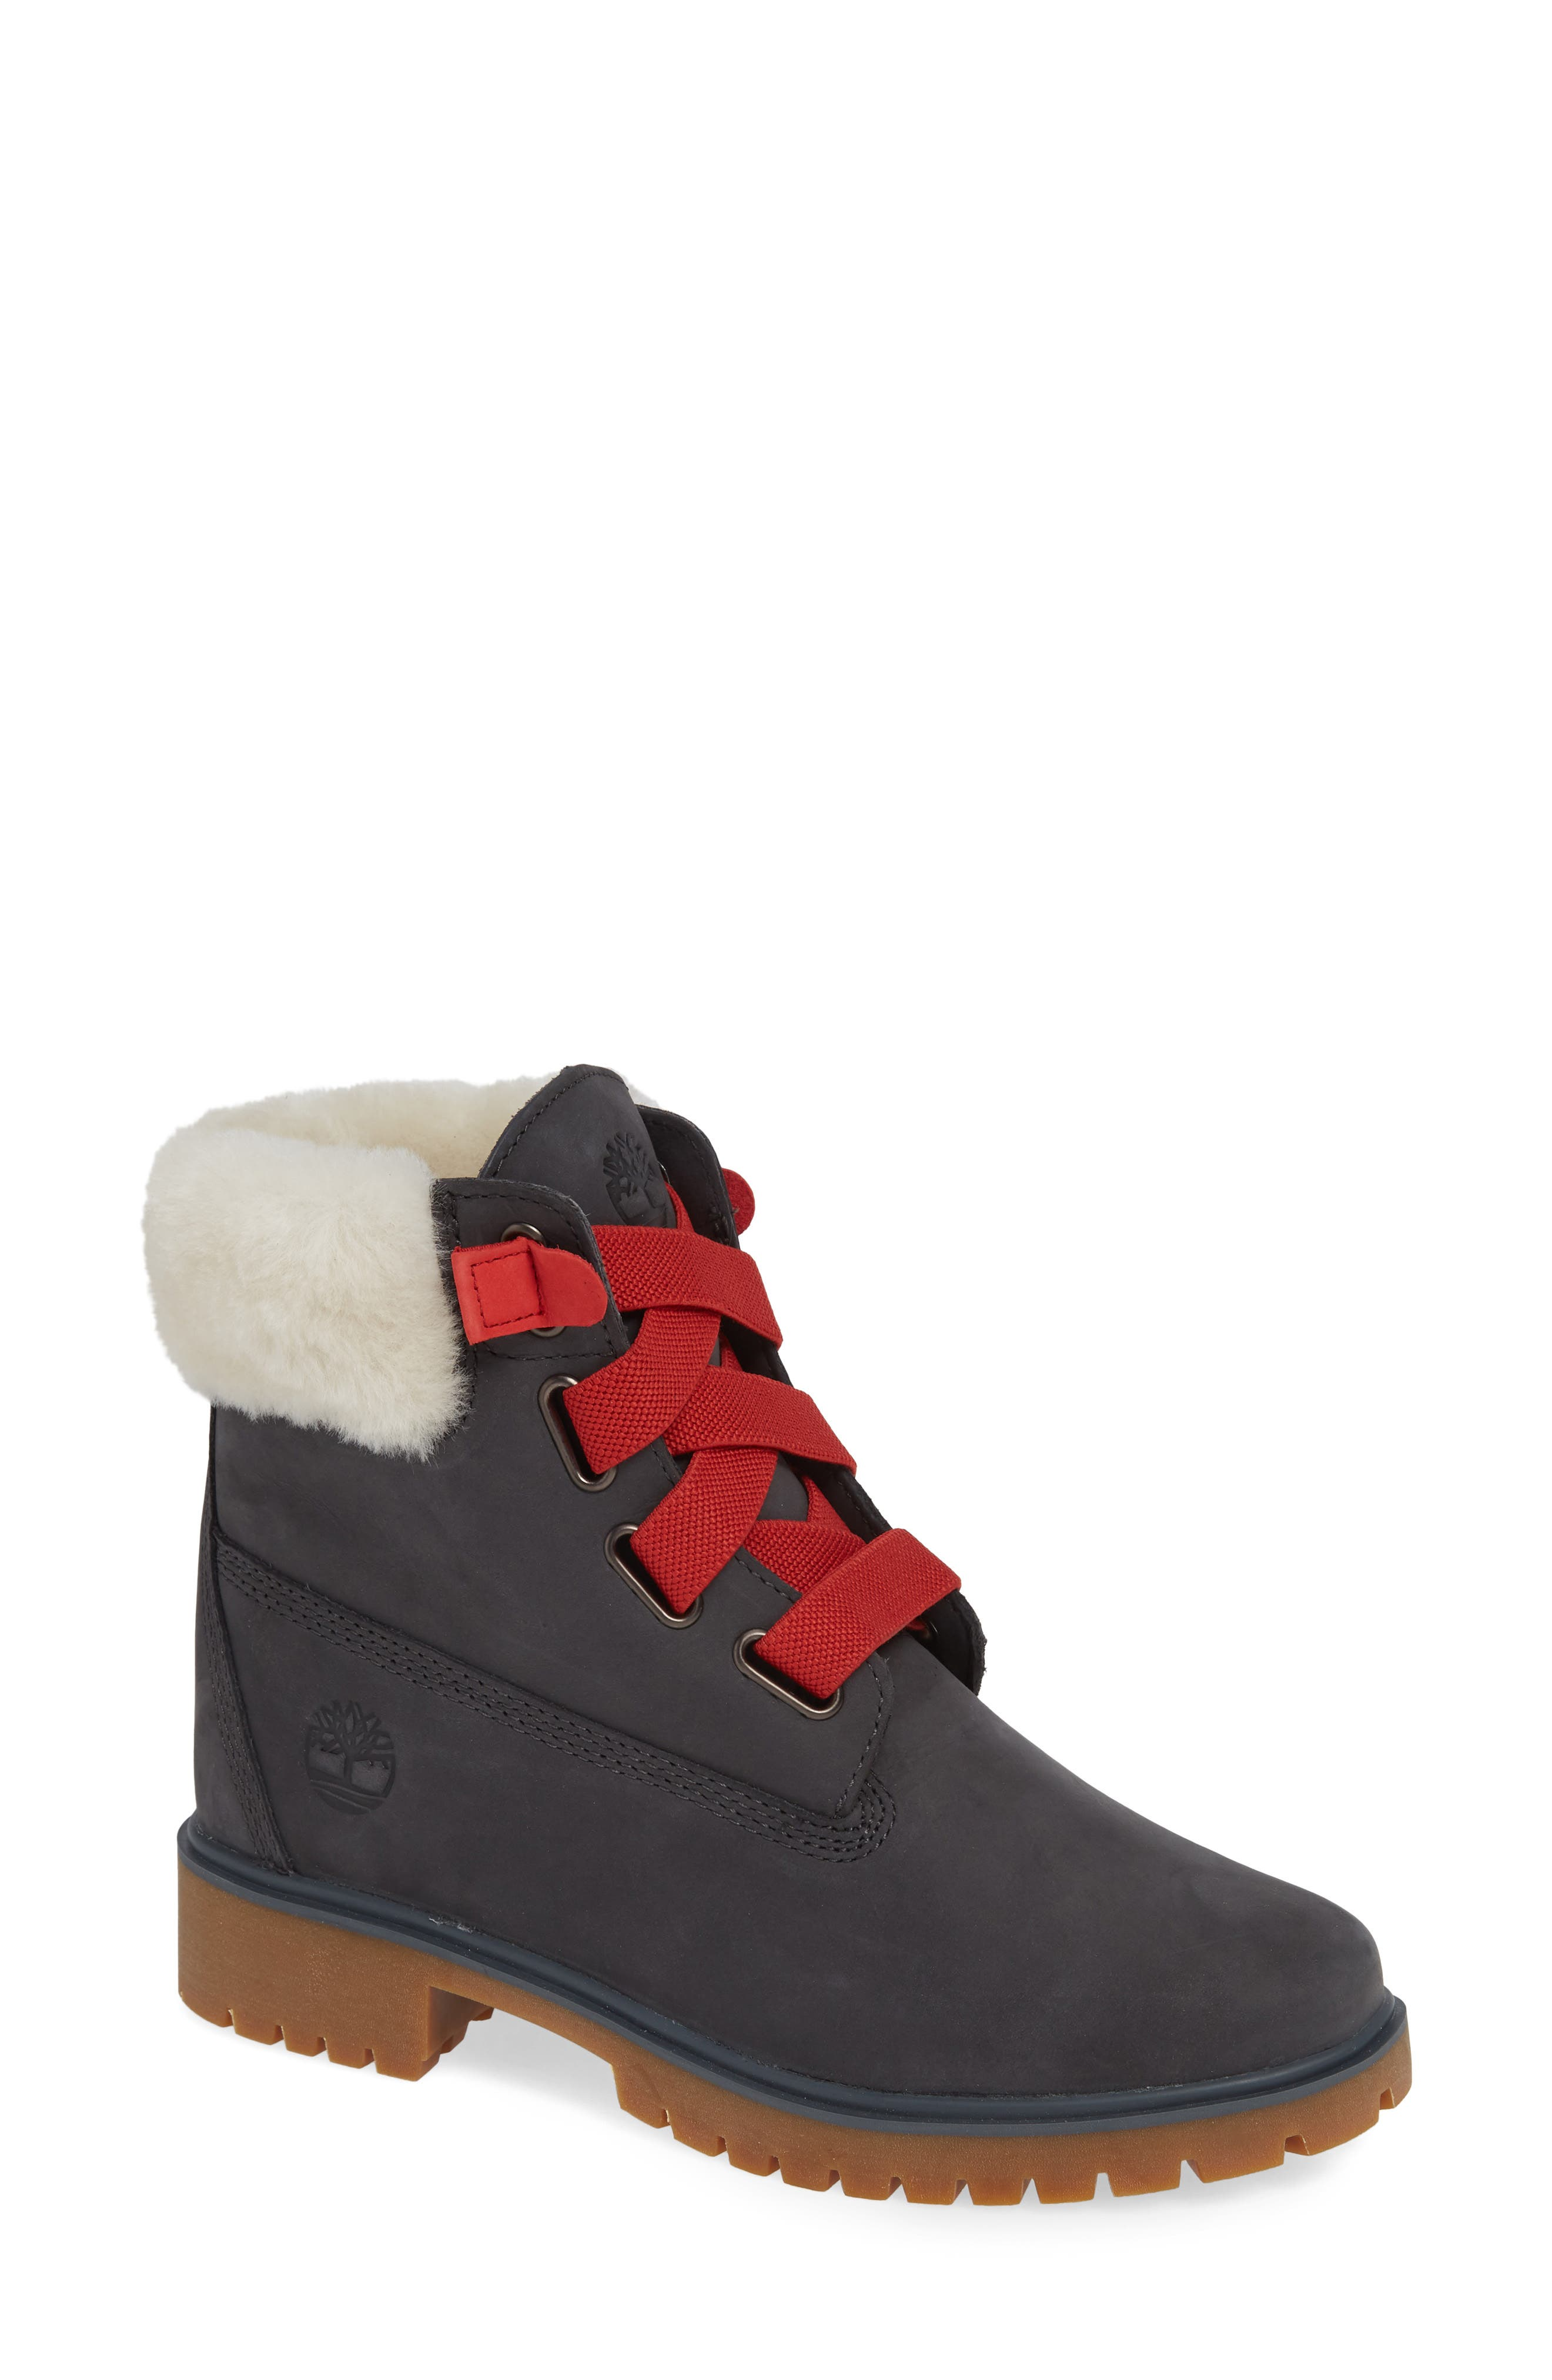 Convenience Waterproof Boot with Genuine Shearling Trim,                             Main thumbnail 1, color,                             065